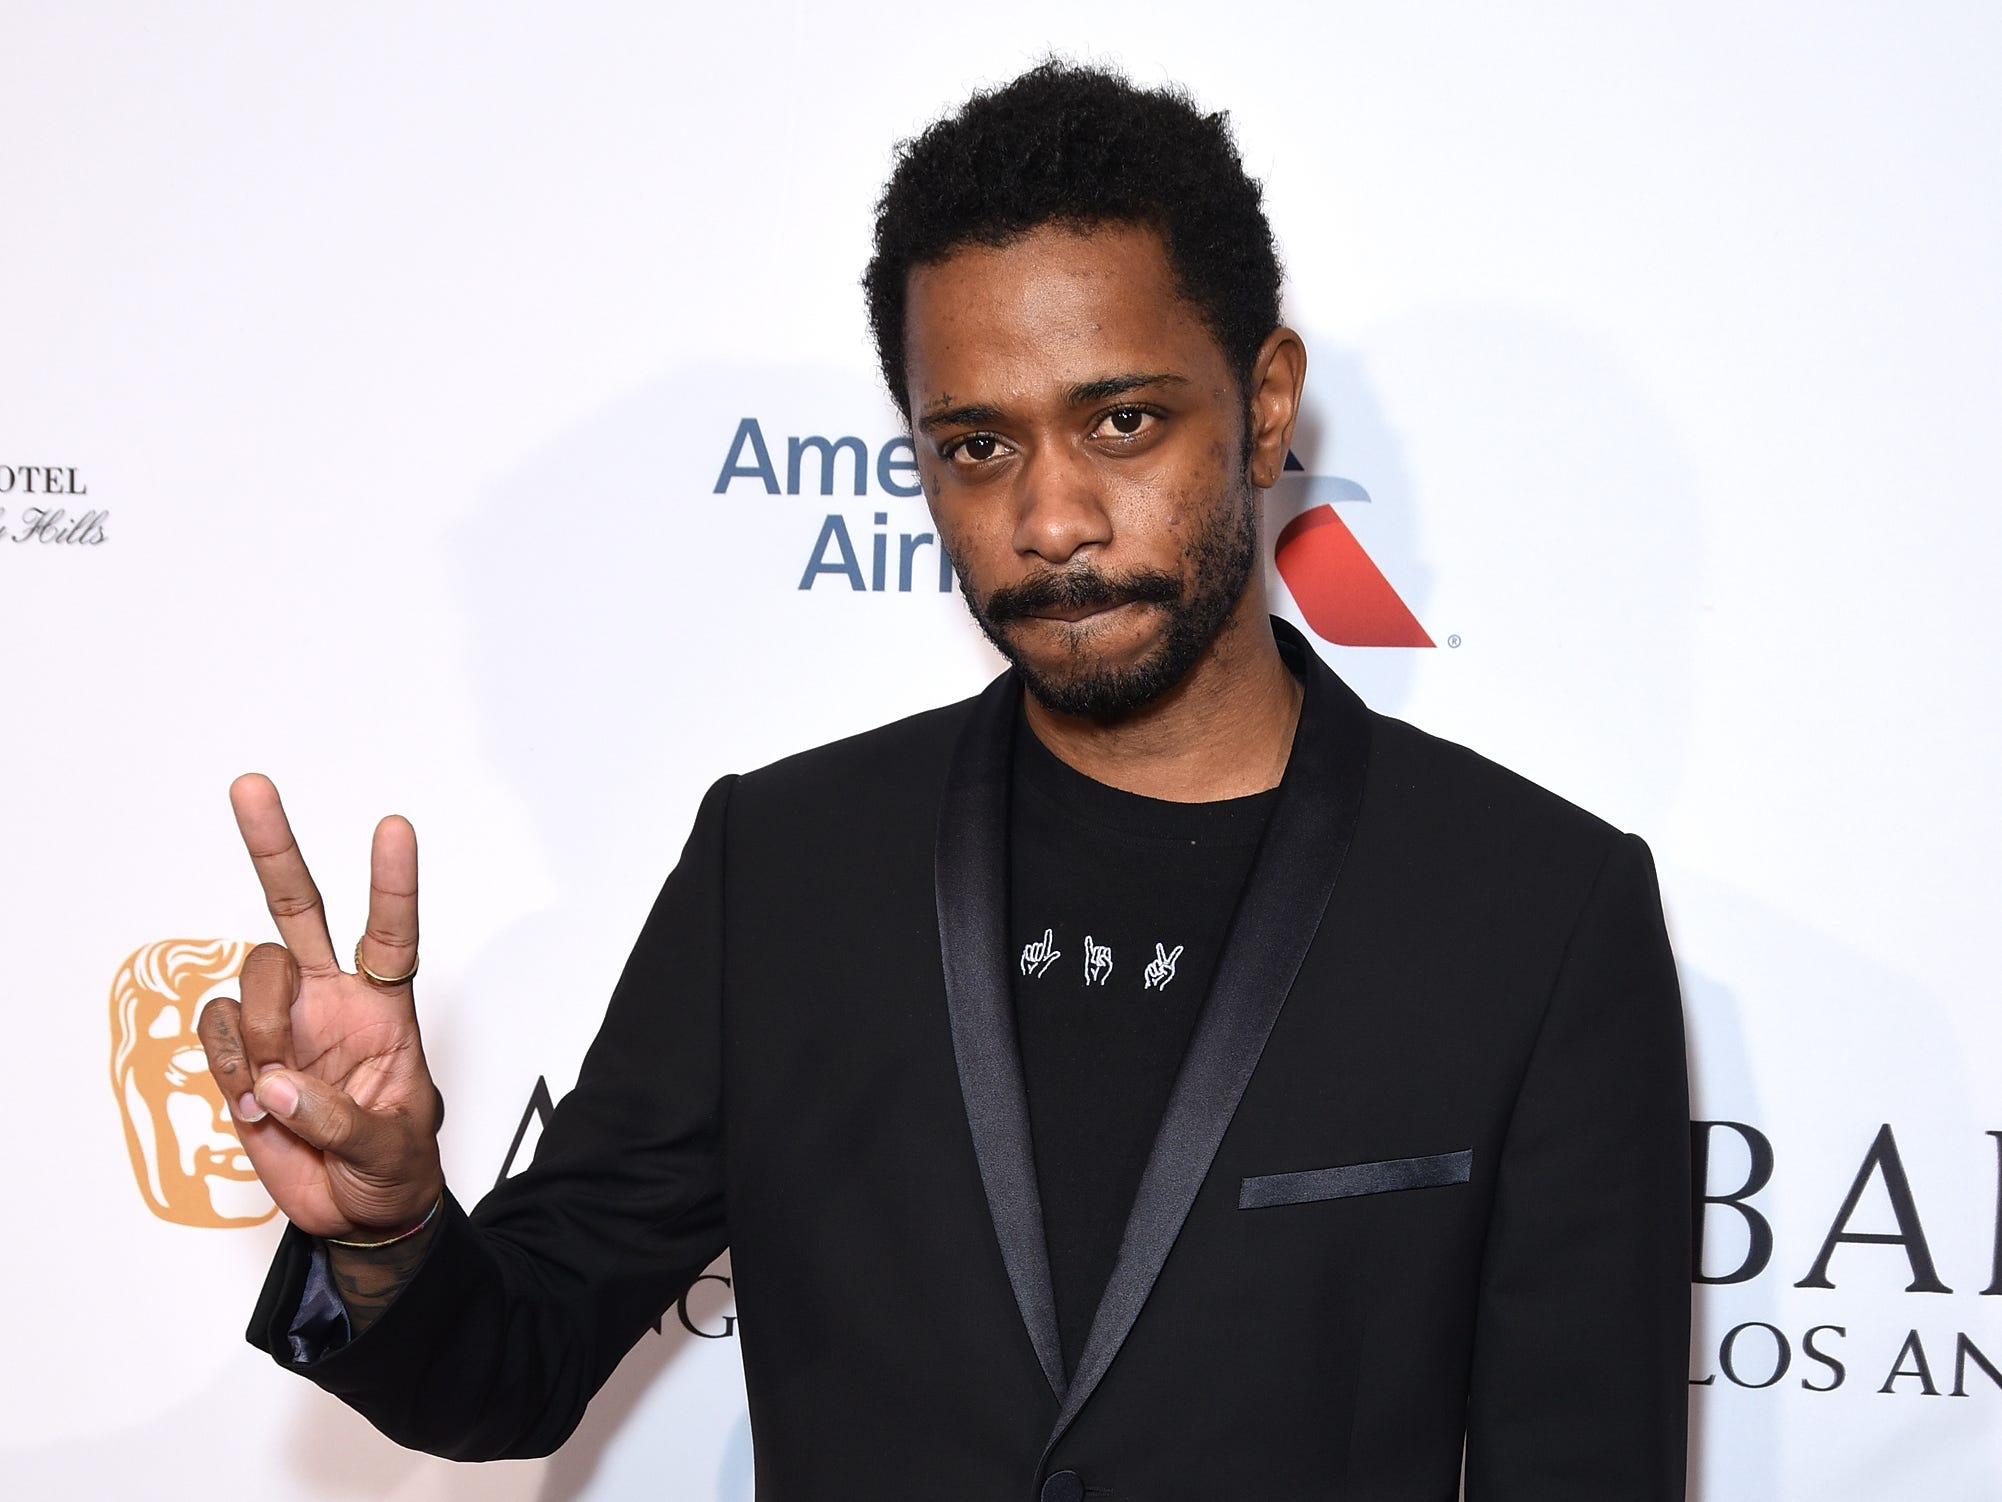 BEVERLY HILLS, CA - JANUARY 05:  Lakeith Stanfield attends the BBCA BAFTA Tea Party at Four Seasons Hotel Los Angeles at Beverly Hills on January 5, 2019 in Los Angeles, California.  (Photo by Presley Ann/Getty Images for BBCAmerica) ORG XMIT: 775276722 ORIG FILE ID: 1077923976